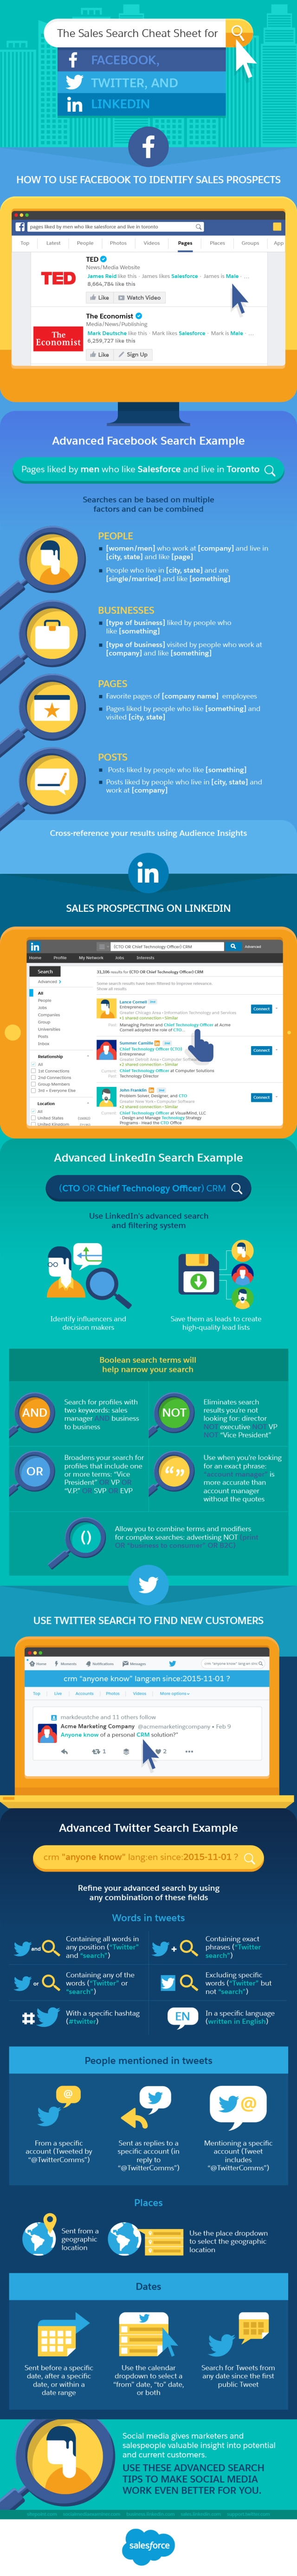 How to Use Facebook, Twitter & LinkedIn to Identify Sales Opportunities